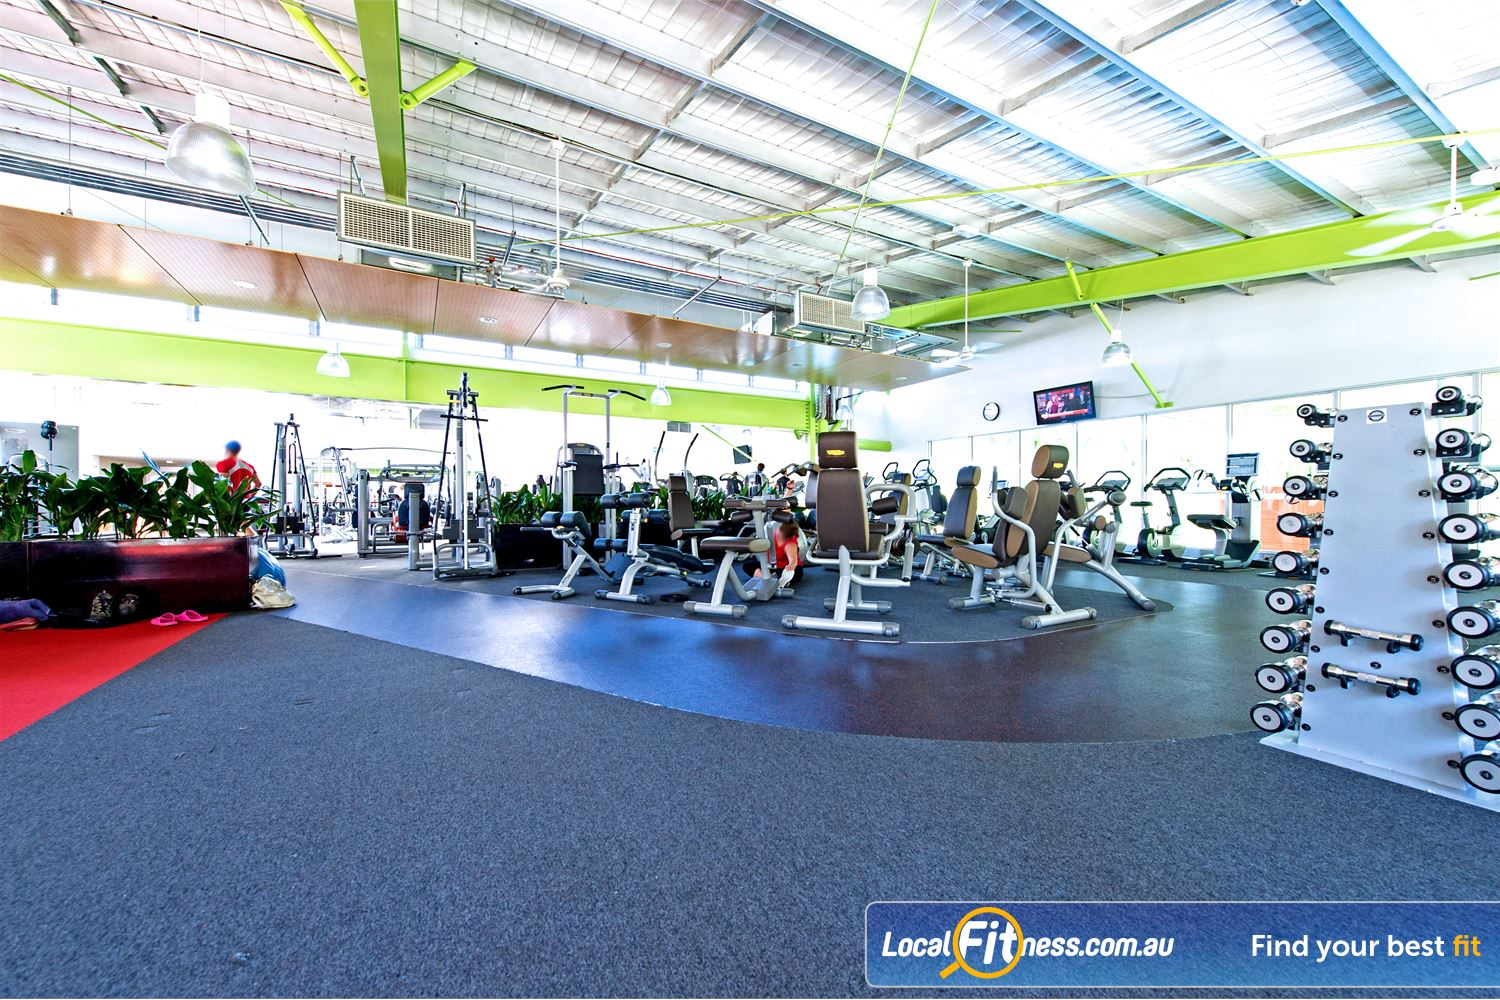 Annette Kellerman Aquatic Centre Near Wolli Creek The Marrickville gymprovides a spacious and relaxing environment.